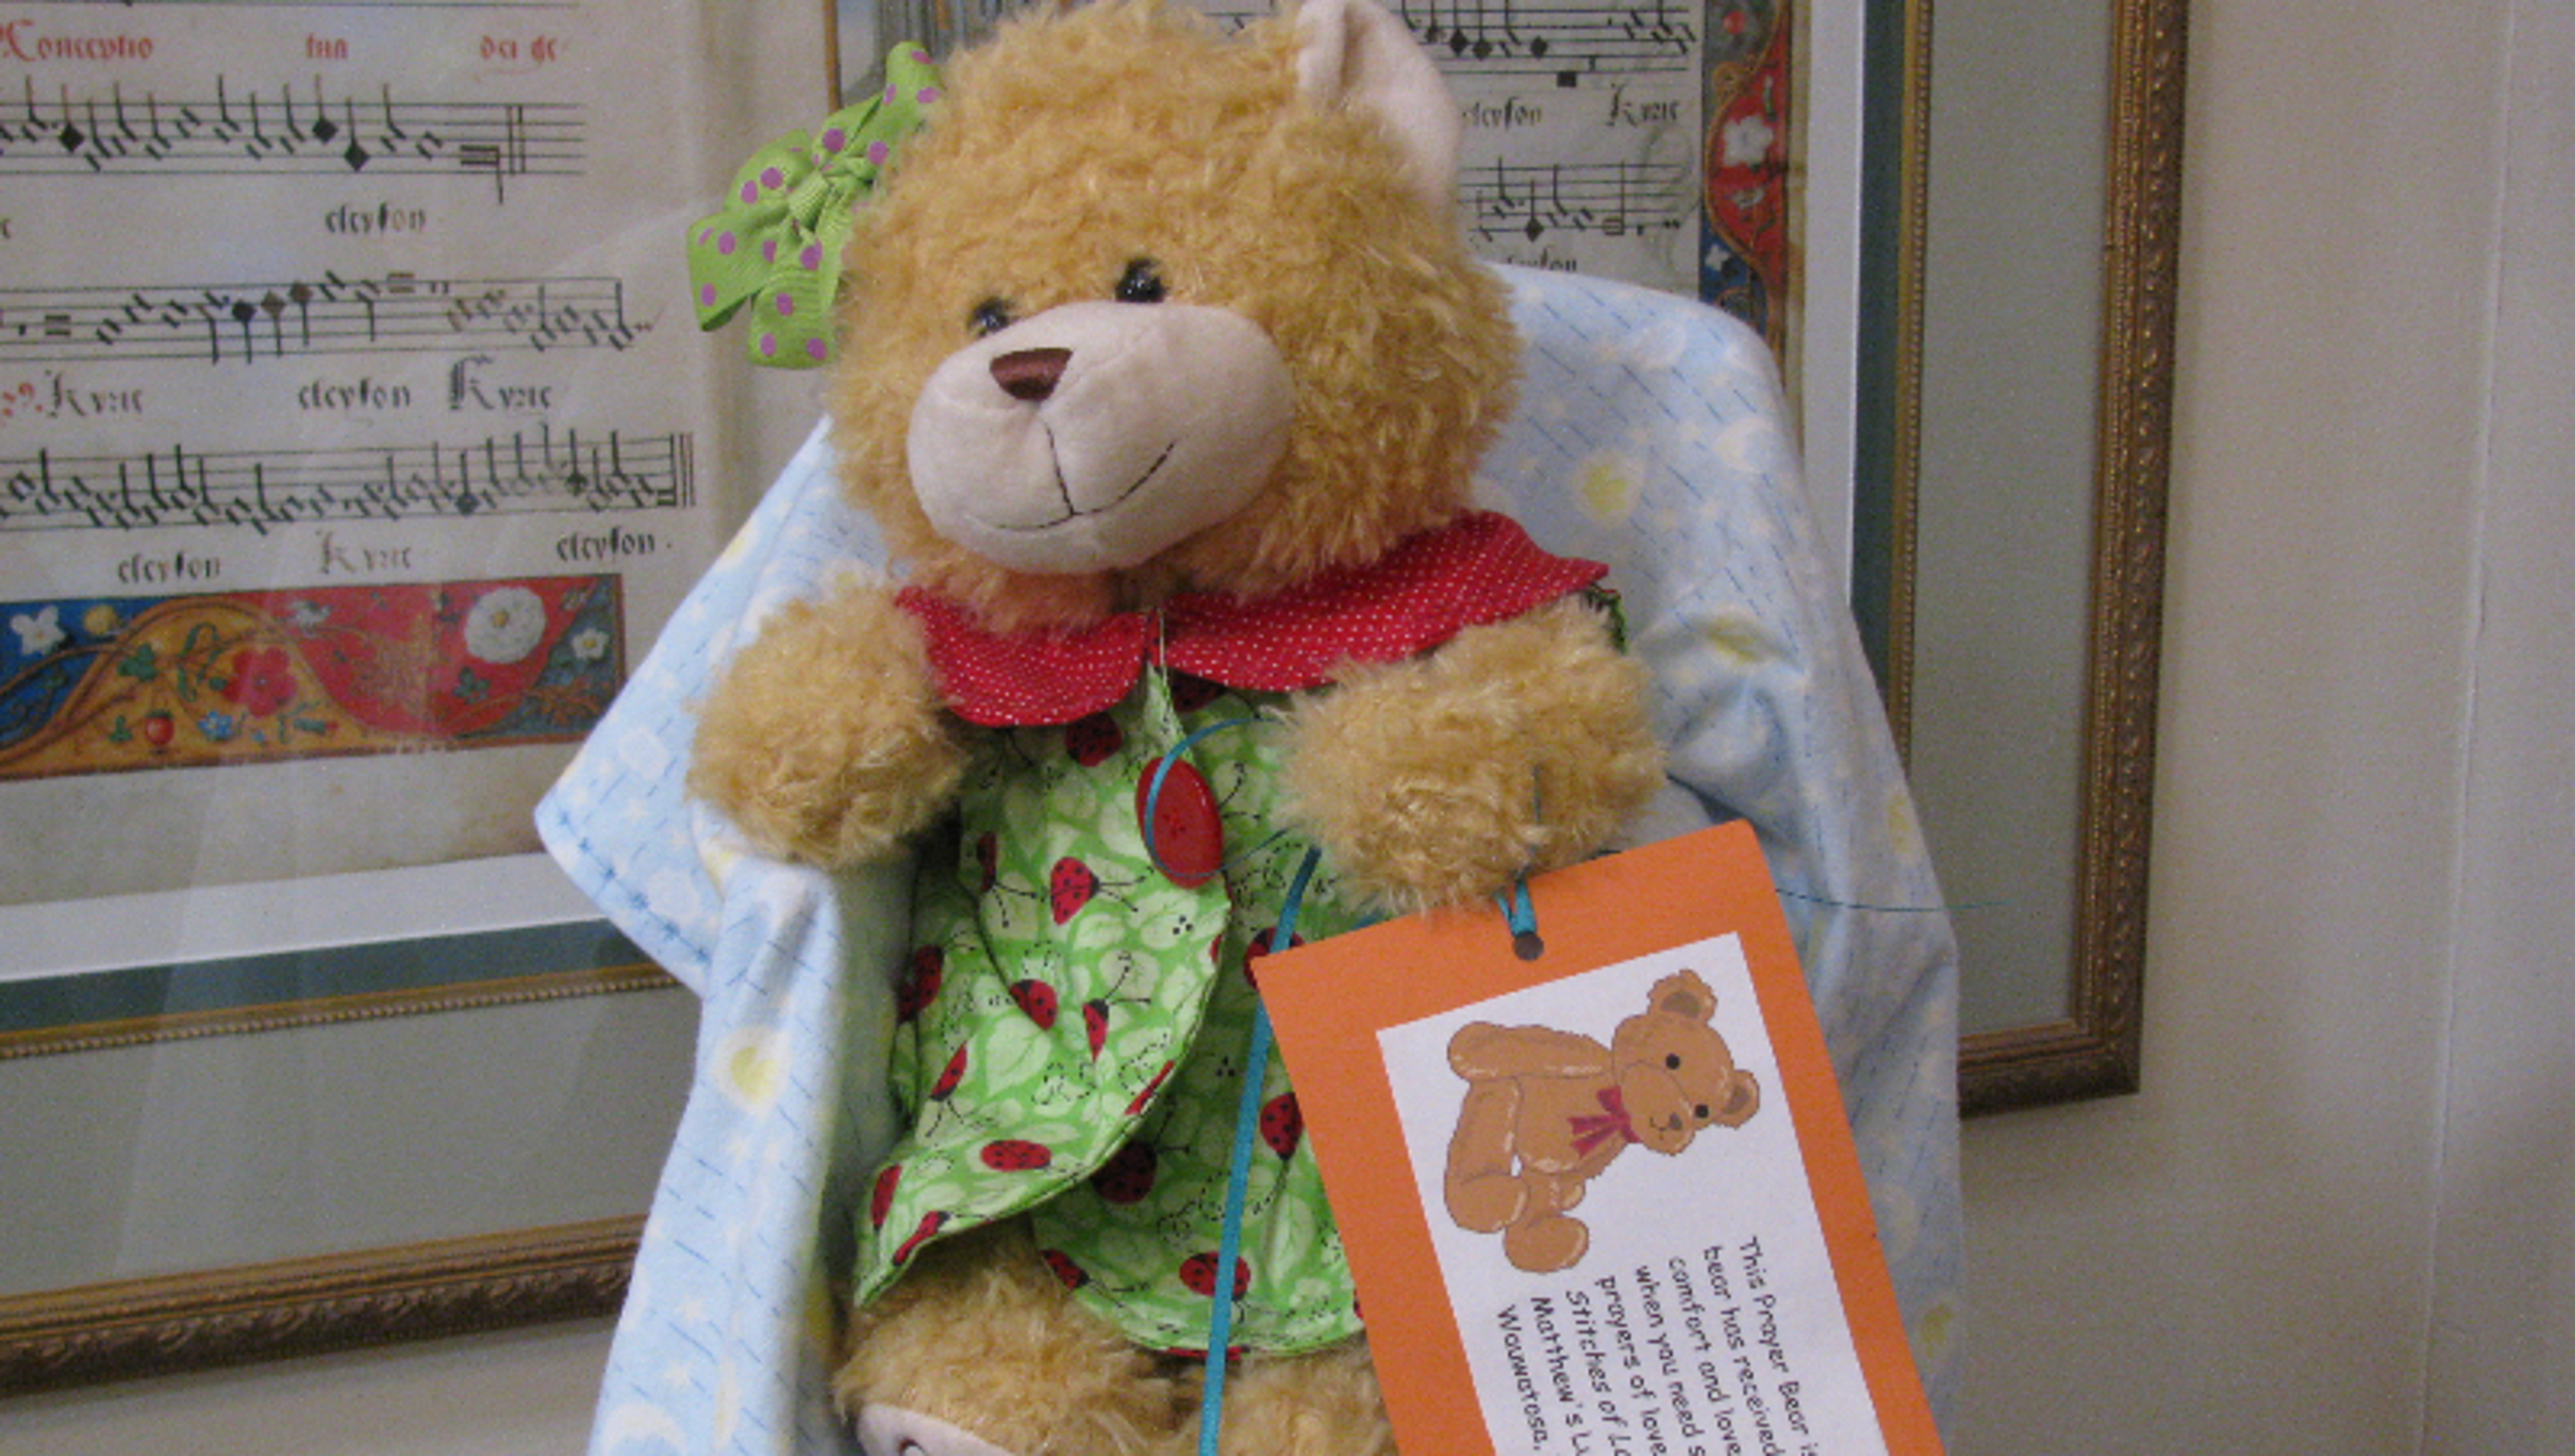 Wauwatosa Ministry Donates Teddy Bears For Children In Crisis